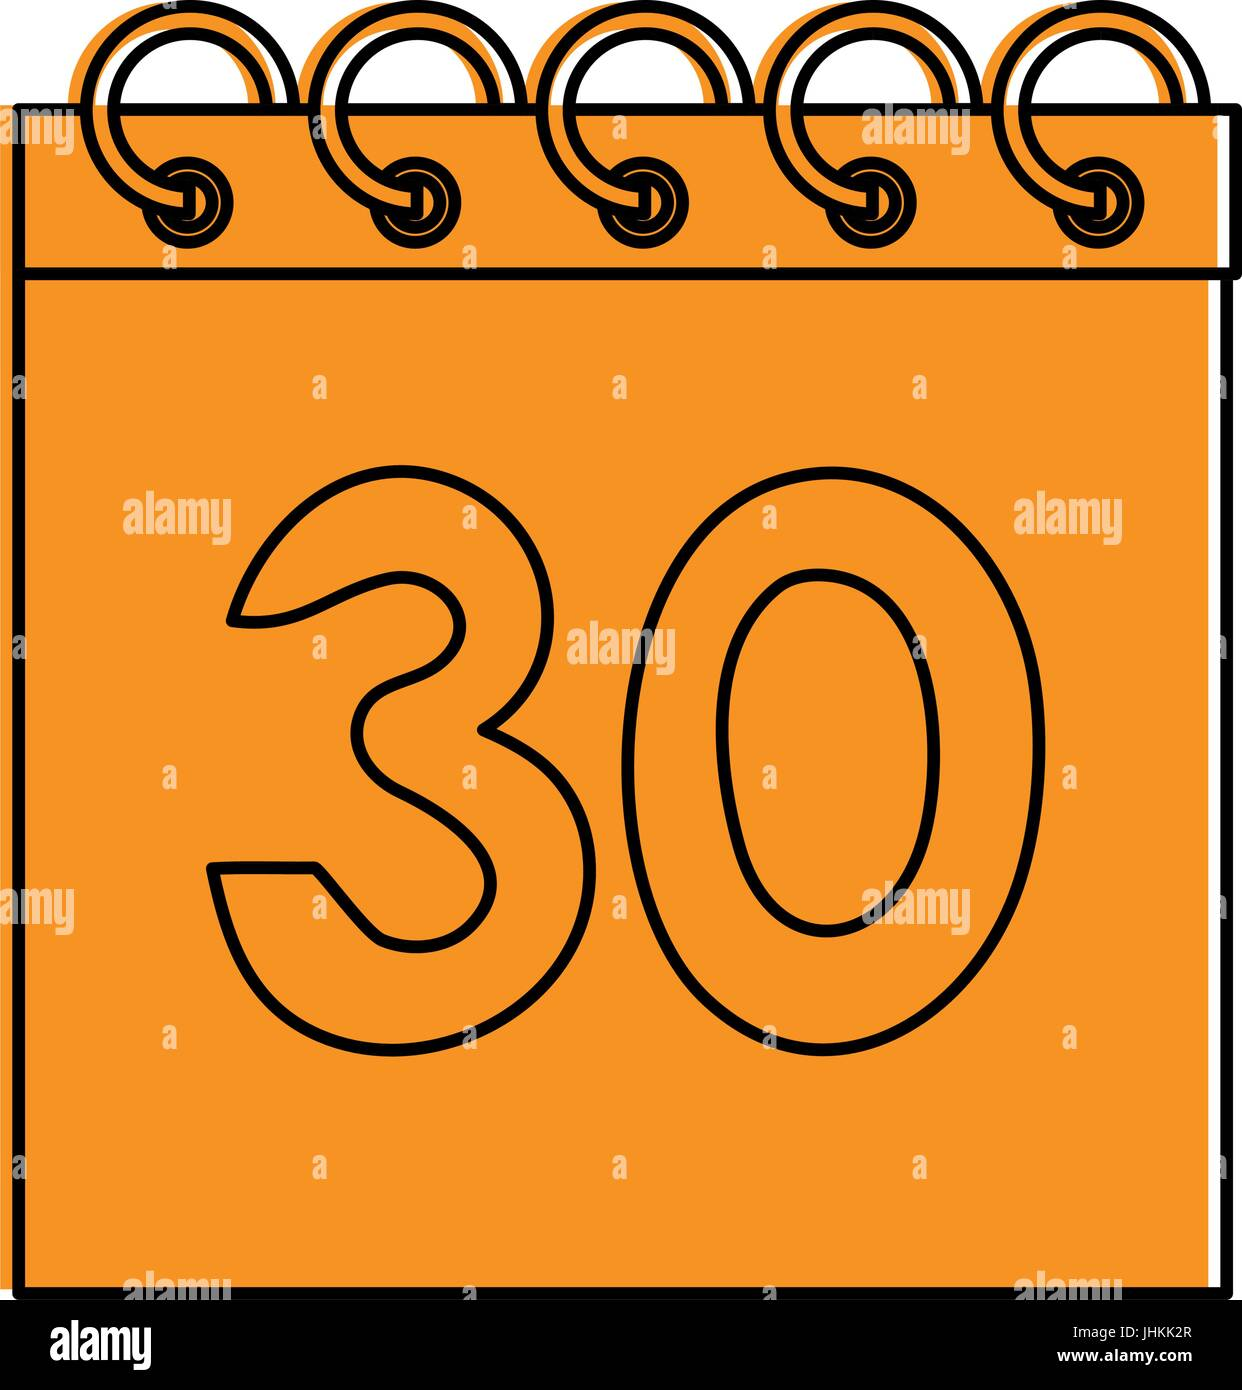 calendar with number 30 icon image  Stock Vector